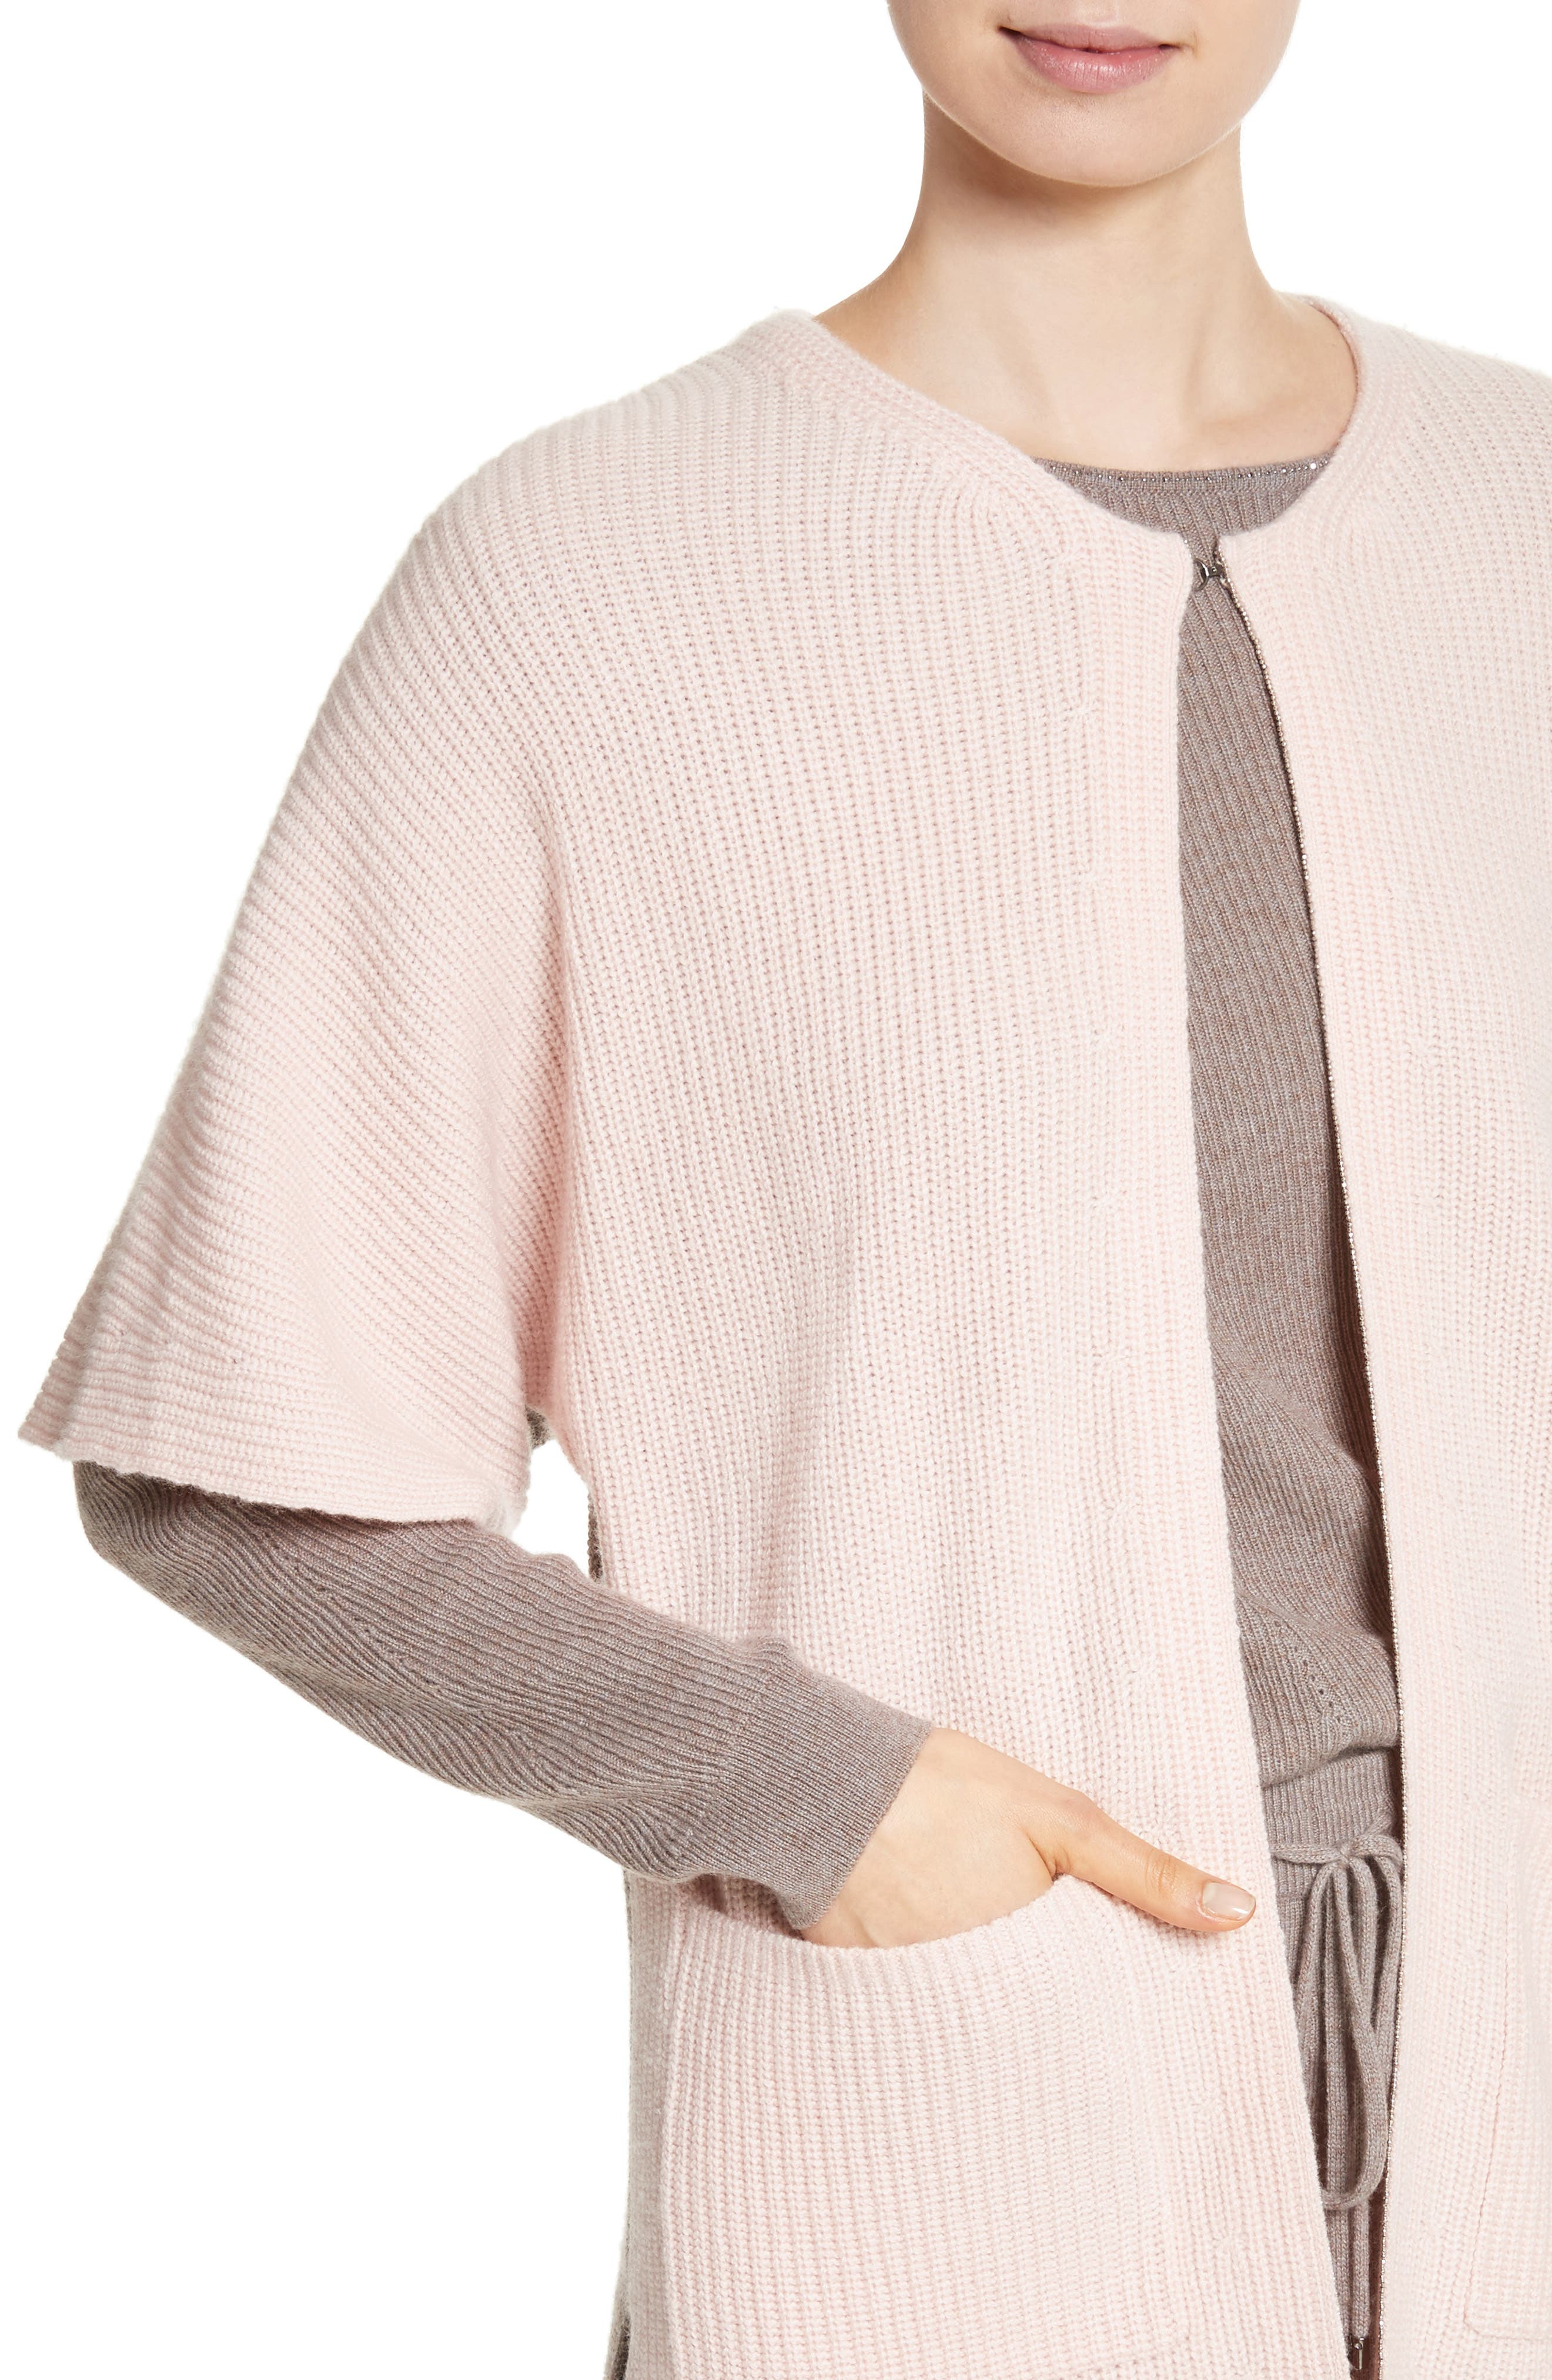 Patch Pocket Cashmere Cardigan,                             Alternate thumbnail 4, color,                             680